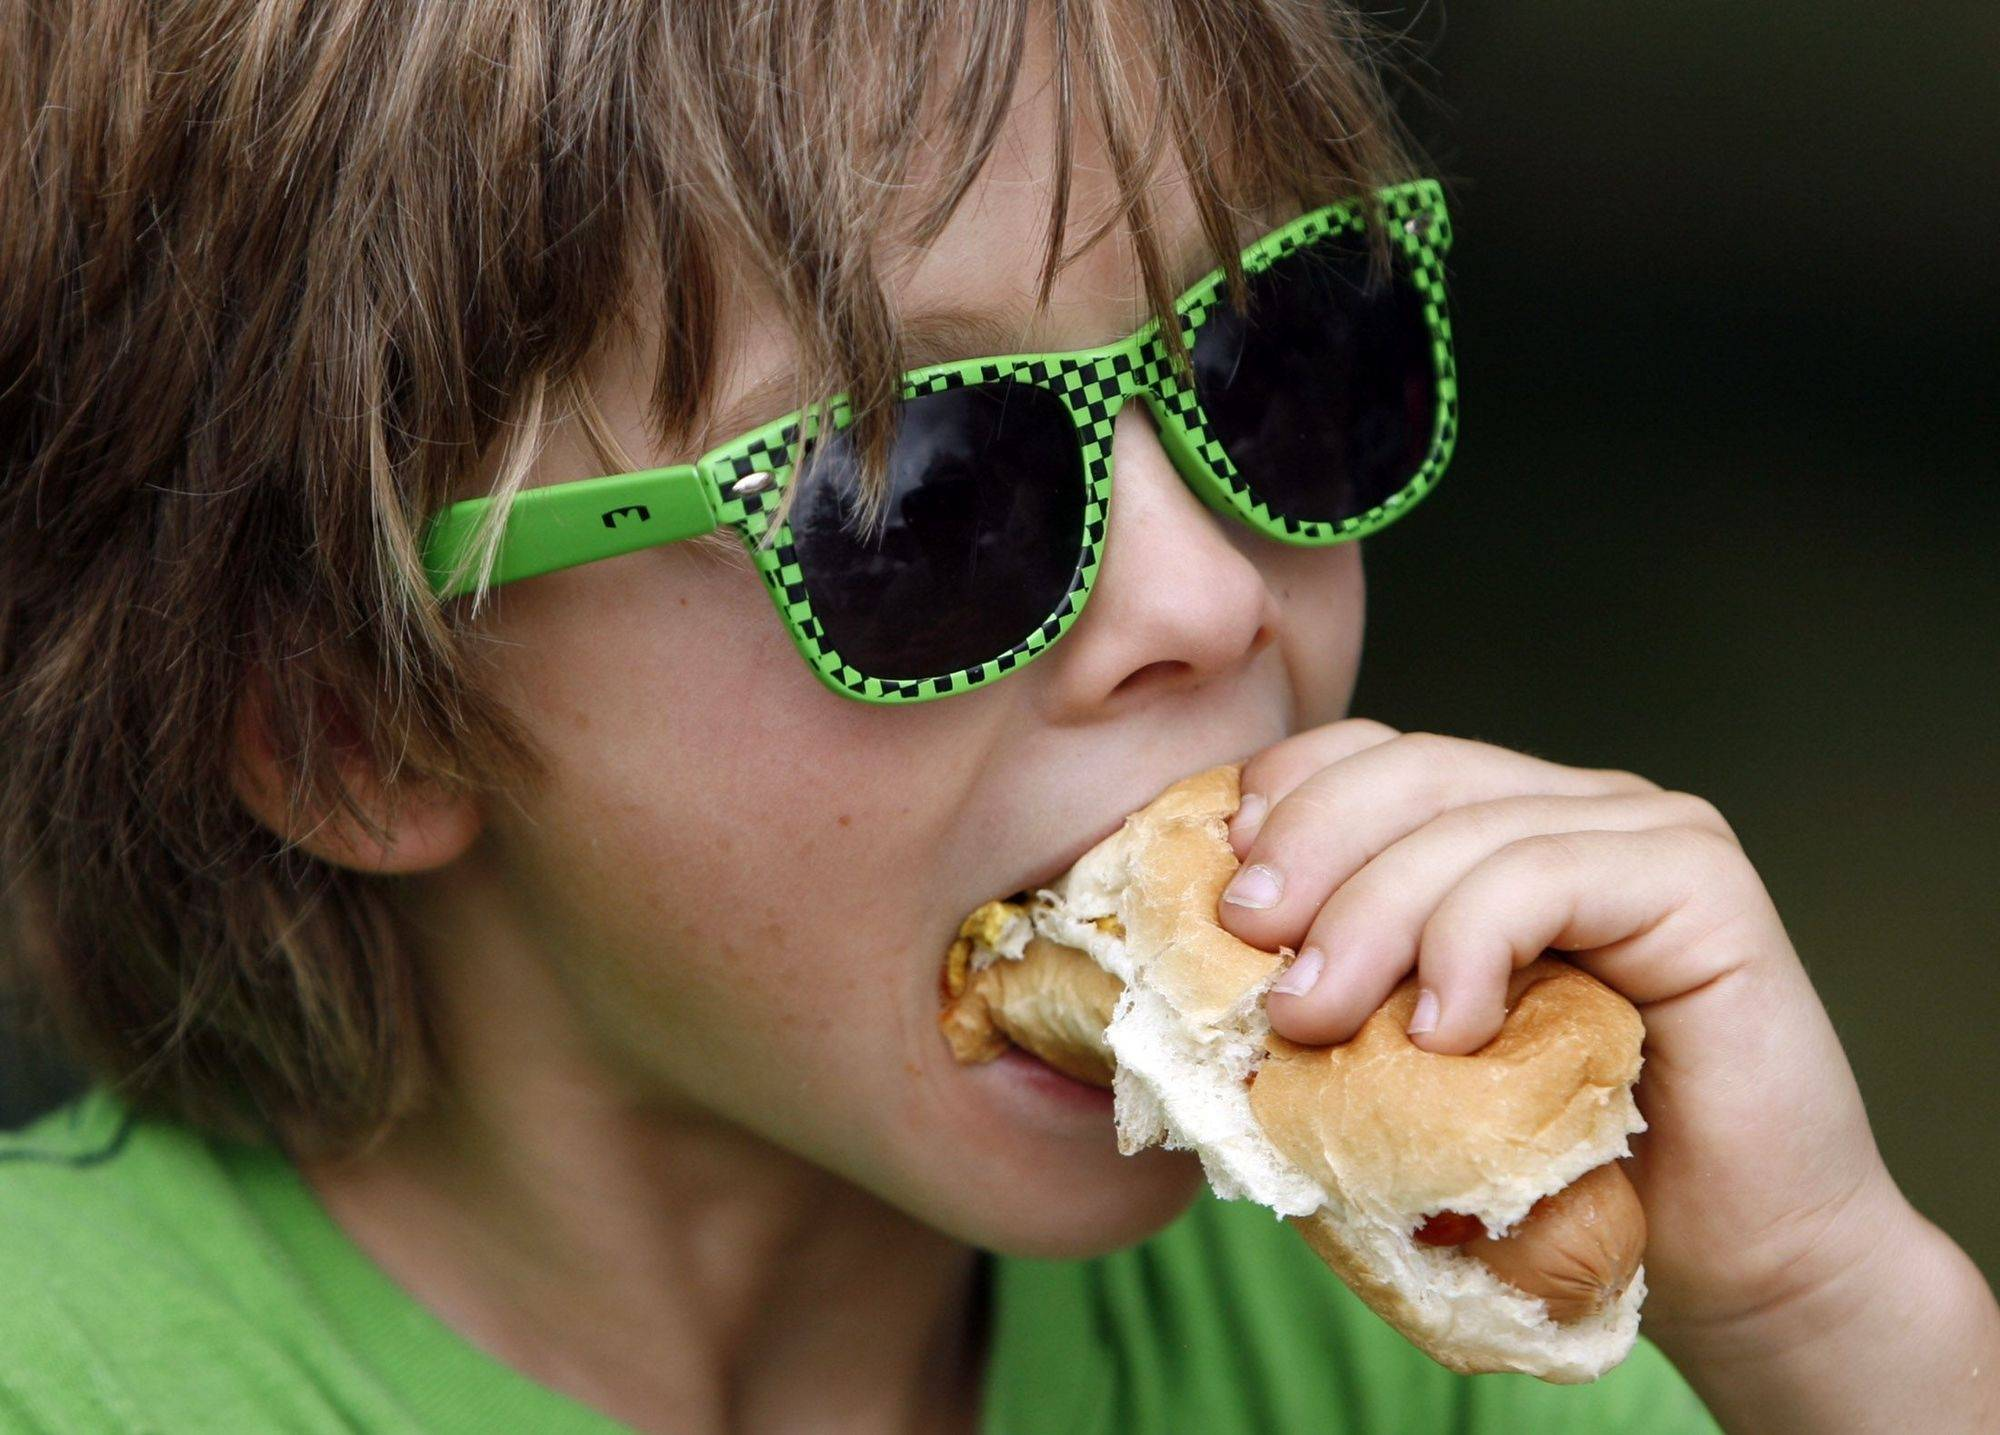 Nathan Gowe, 6, of Gurnee, enjoys a hotdog on a hot day at Gurnee Days in Viking Park Saturday, August 14.